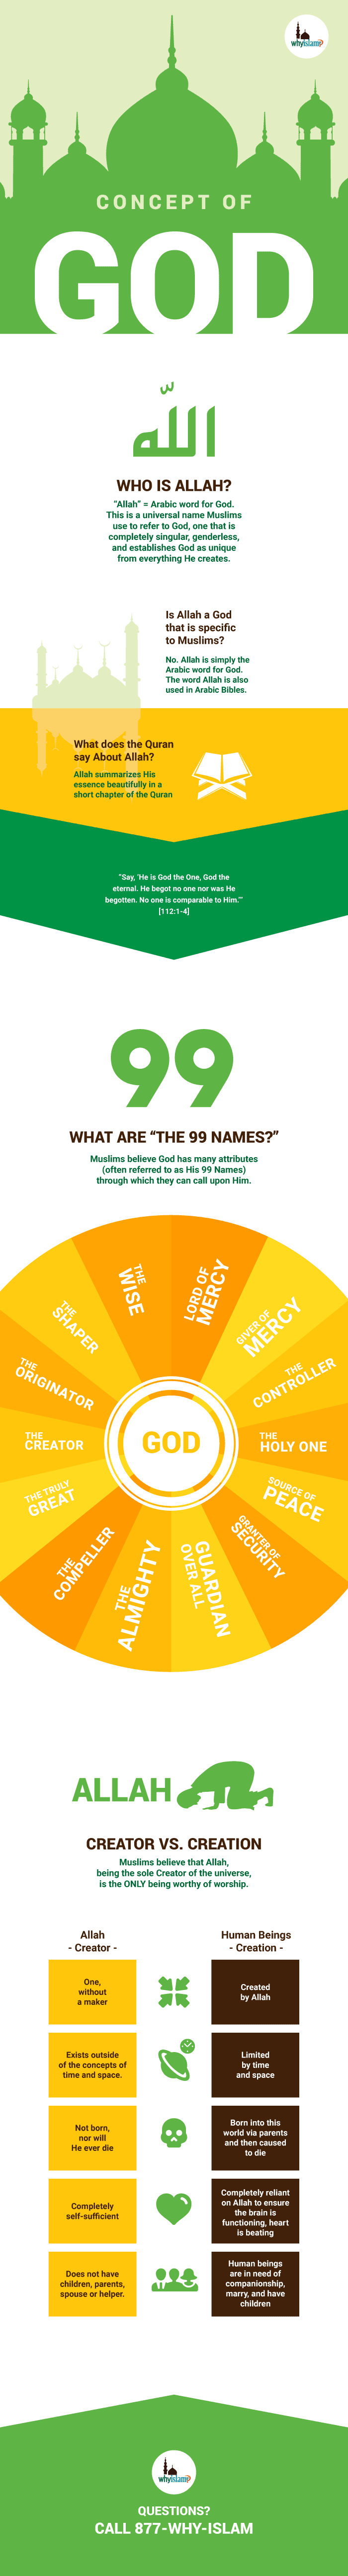 Concept of God in Islam Infographic